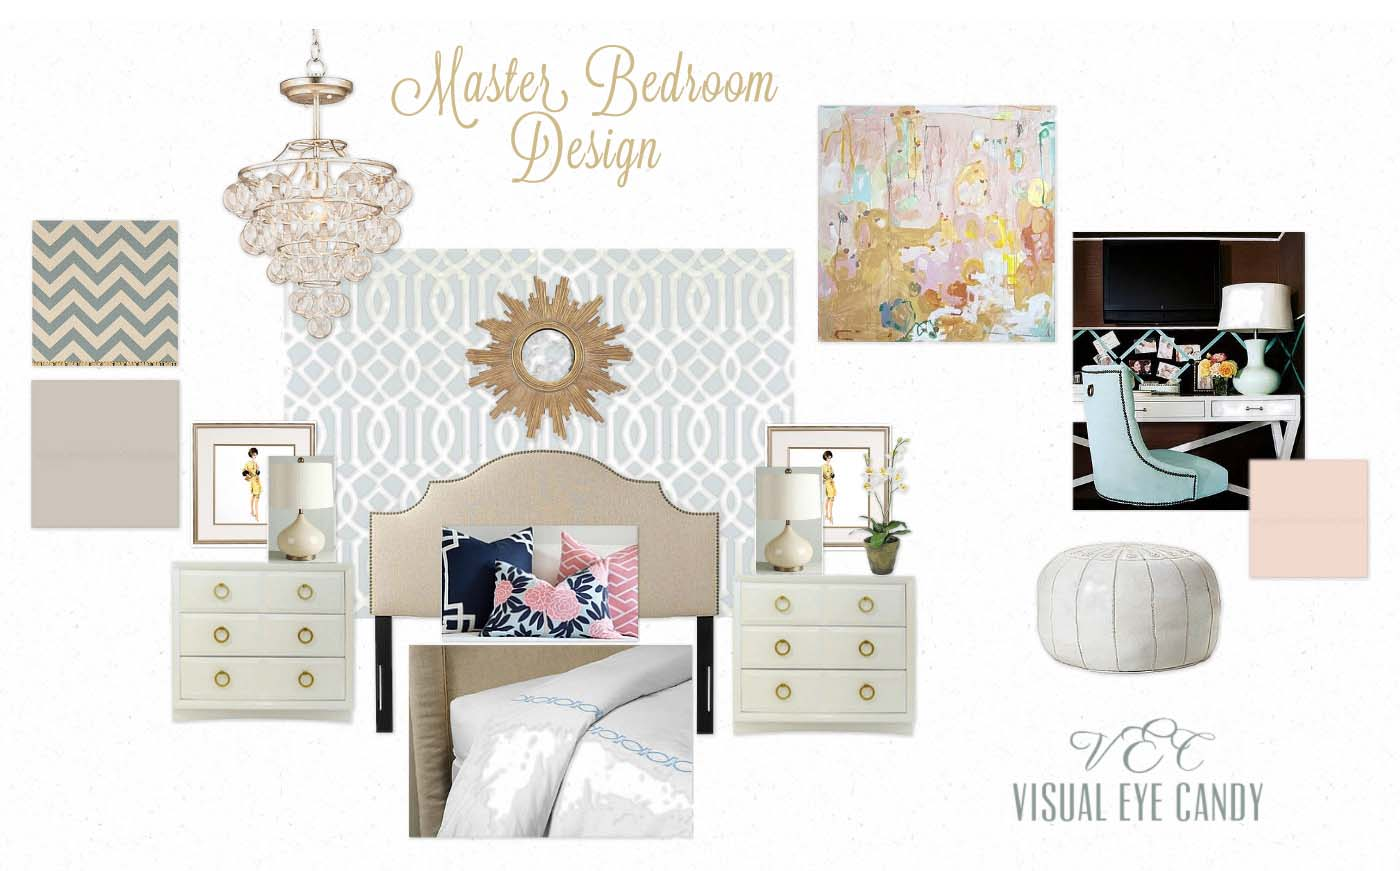 Visual Eye Candy: Master Bedroom Design Board